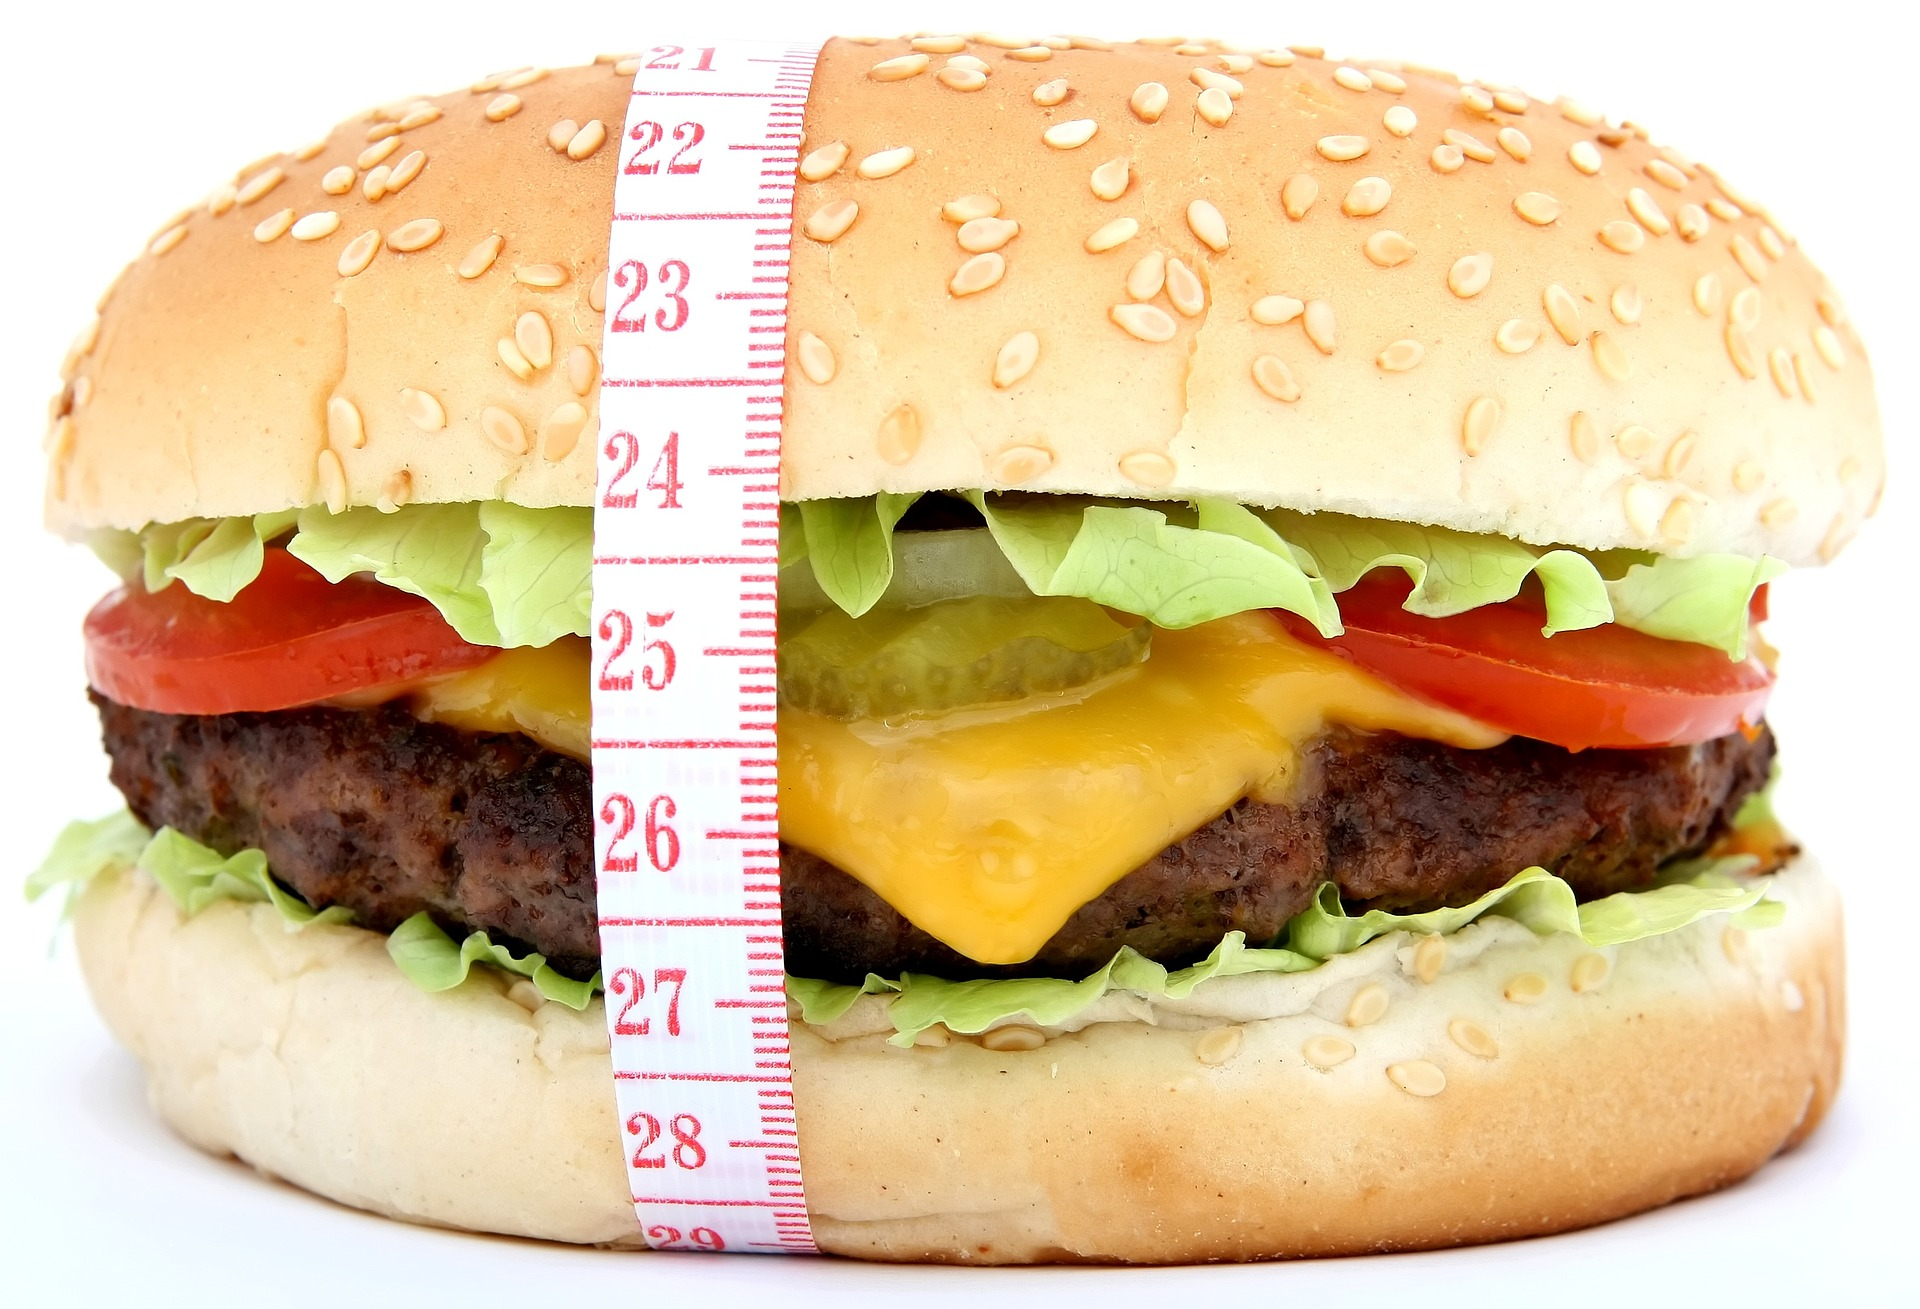 A jumbo hamburger with melted cheese, lettuce, tomato, pickles, and onions on a sesame seed bun with a tape measurer wrapped around it to show that it is very large